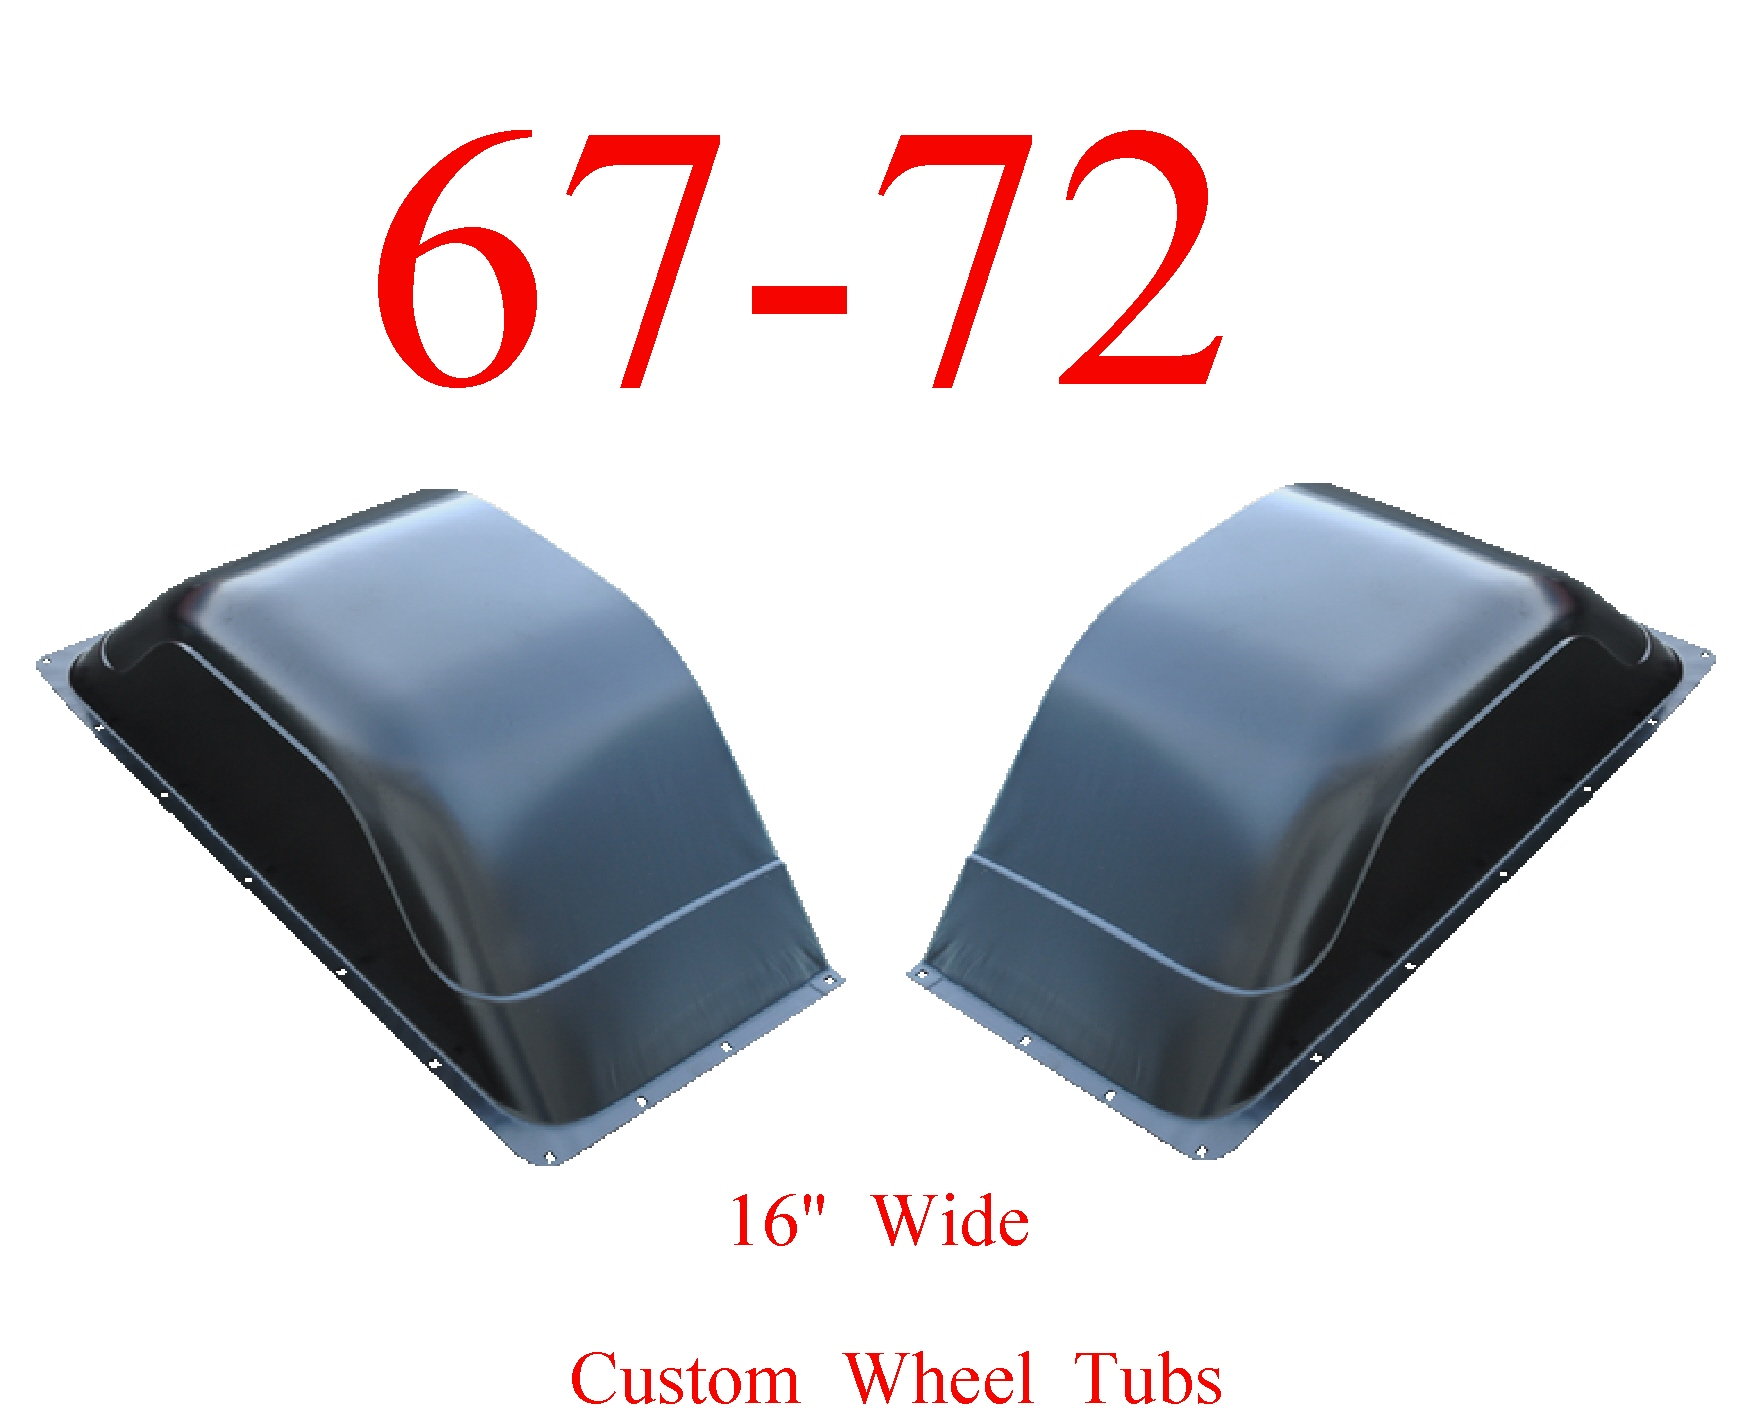 67-72 Chevy Custom Wide Wheel Tubs 16